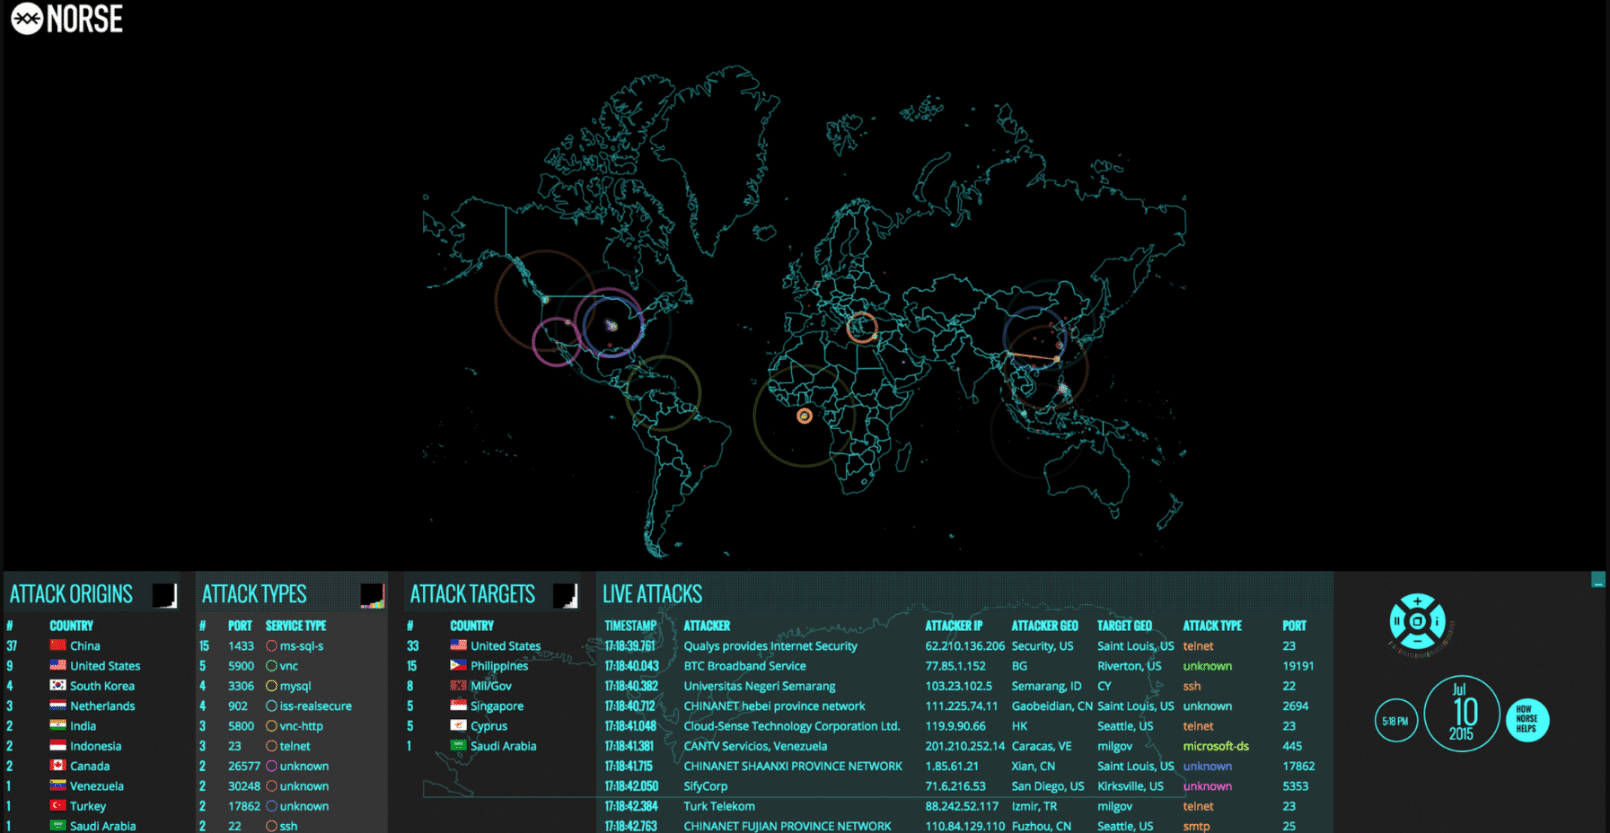 Cyber Attack Map by Norse